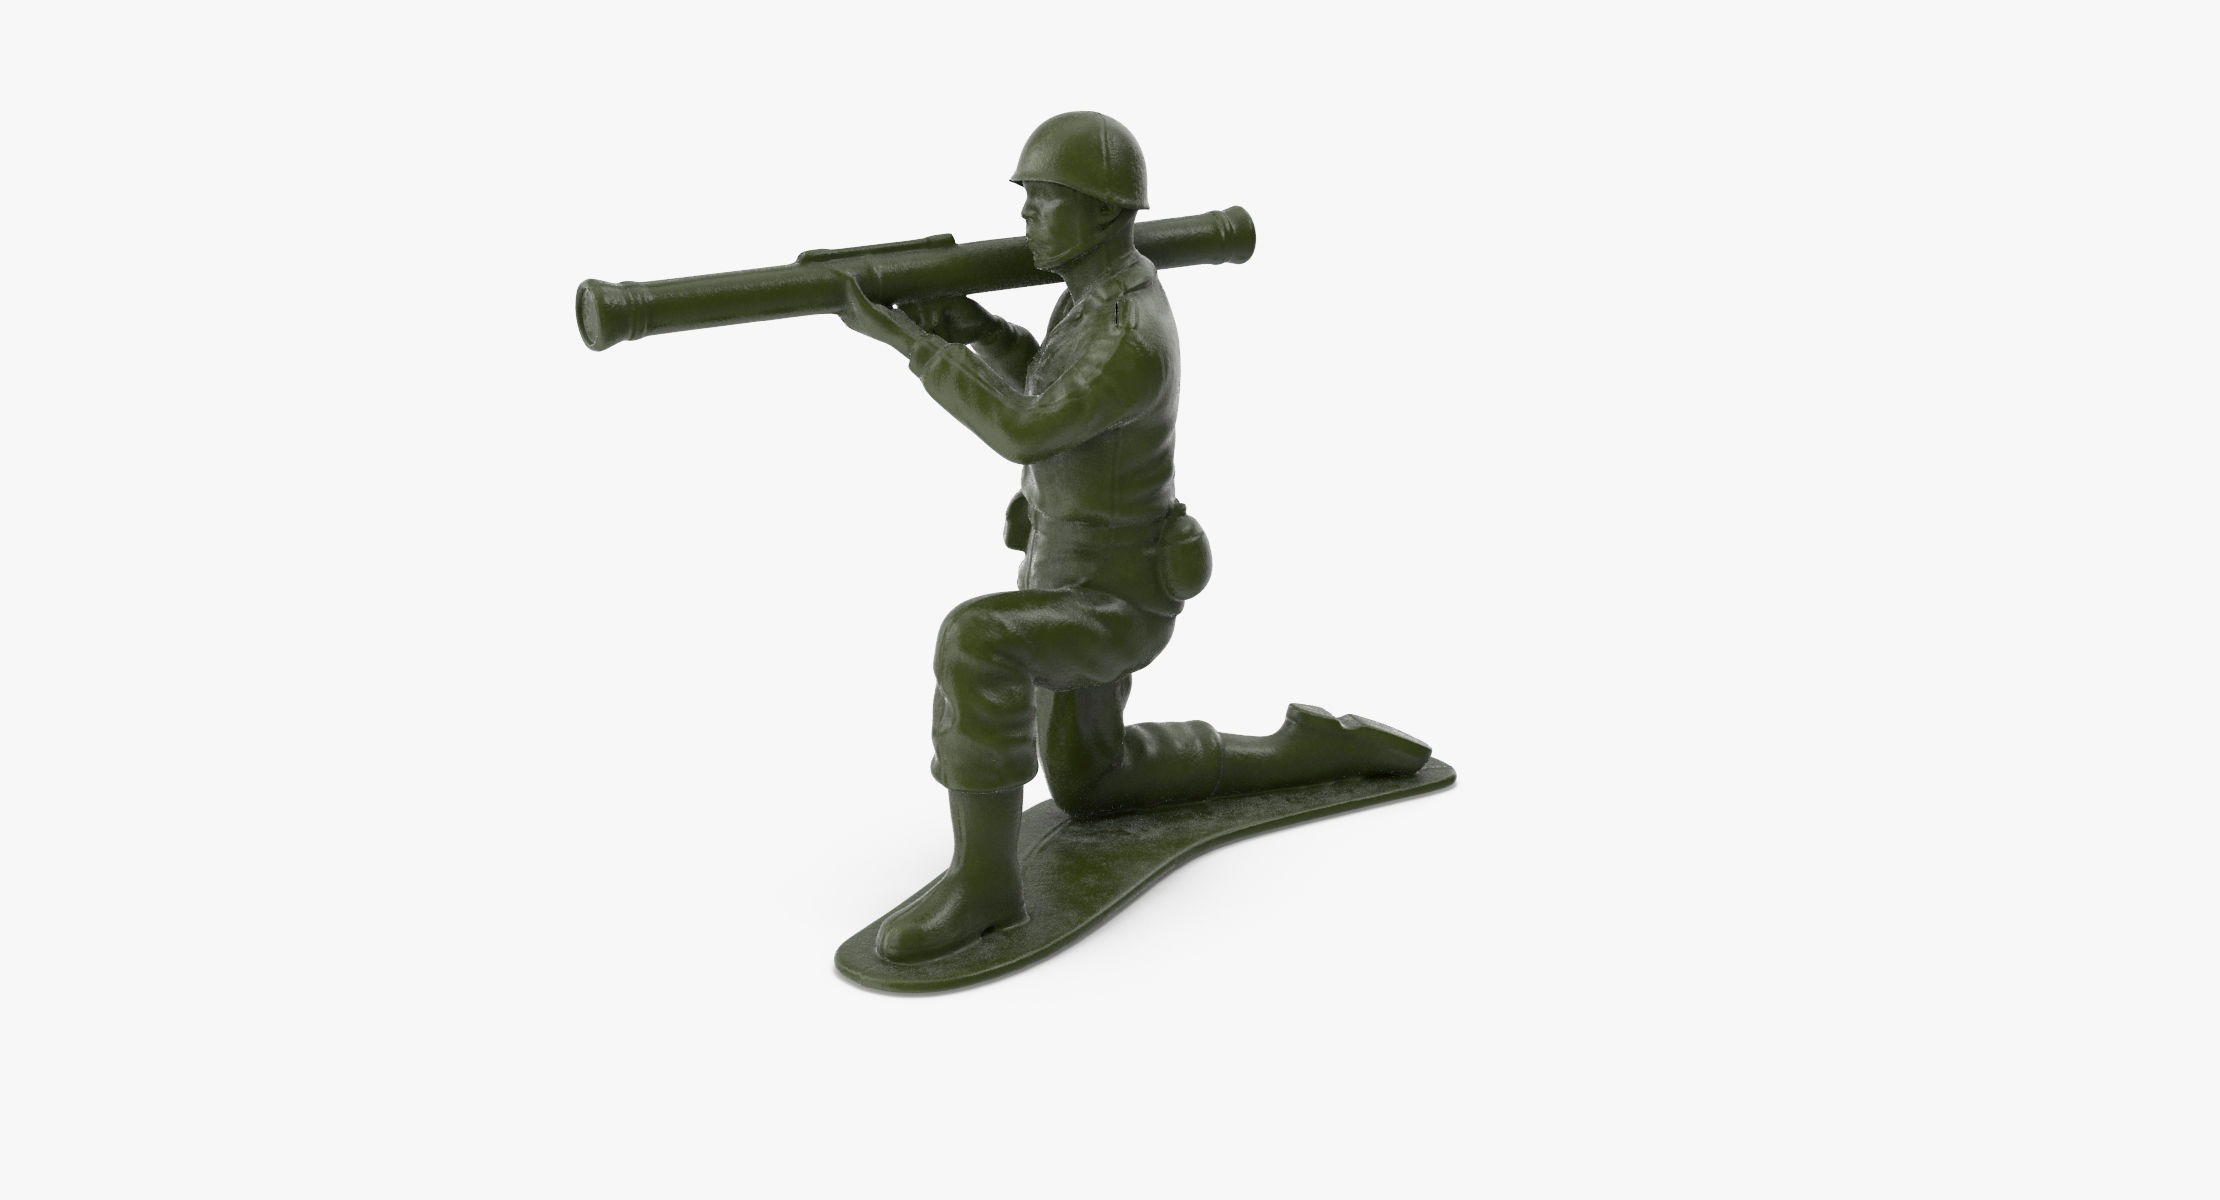 Plastic Toy Soldier 02 - Bazooka - reel 1